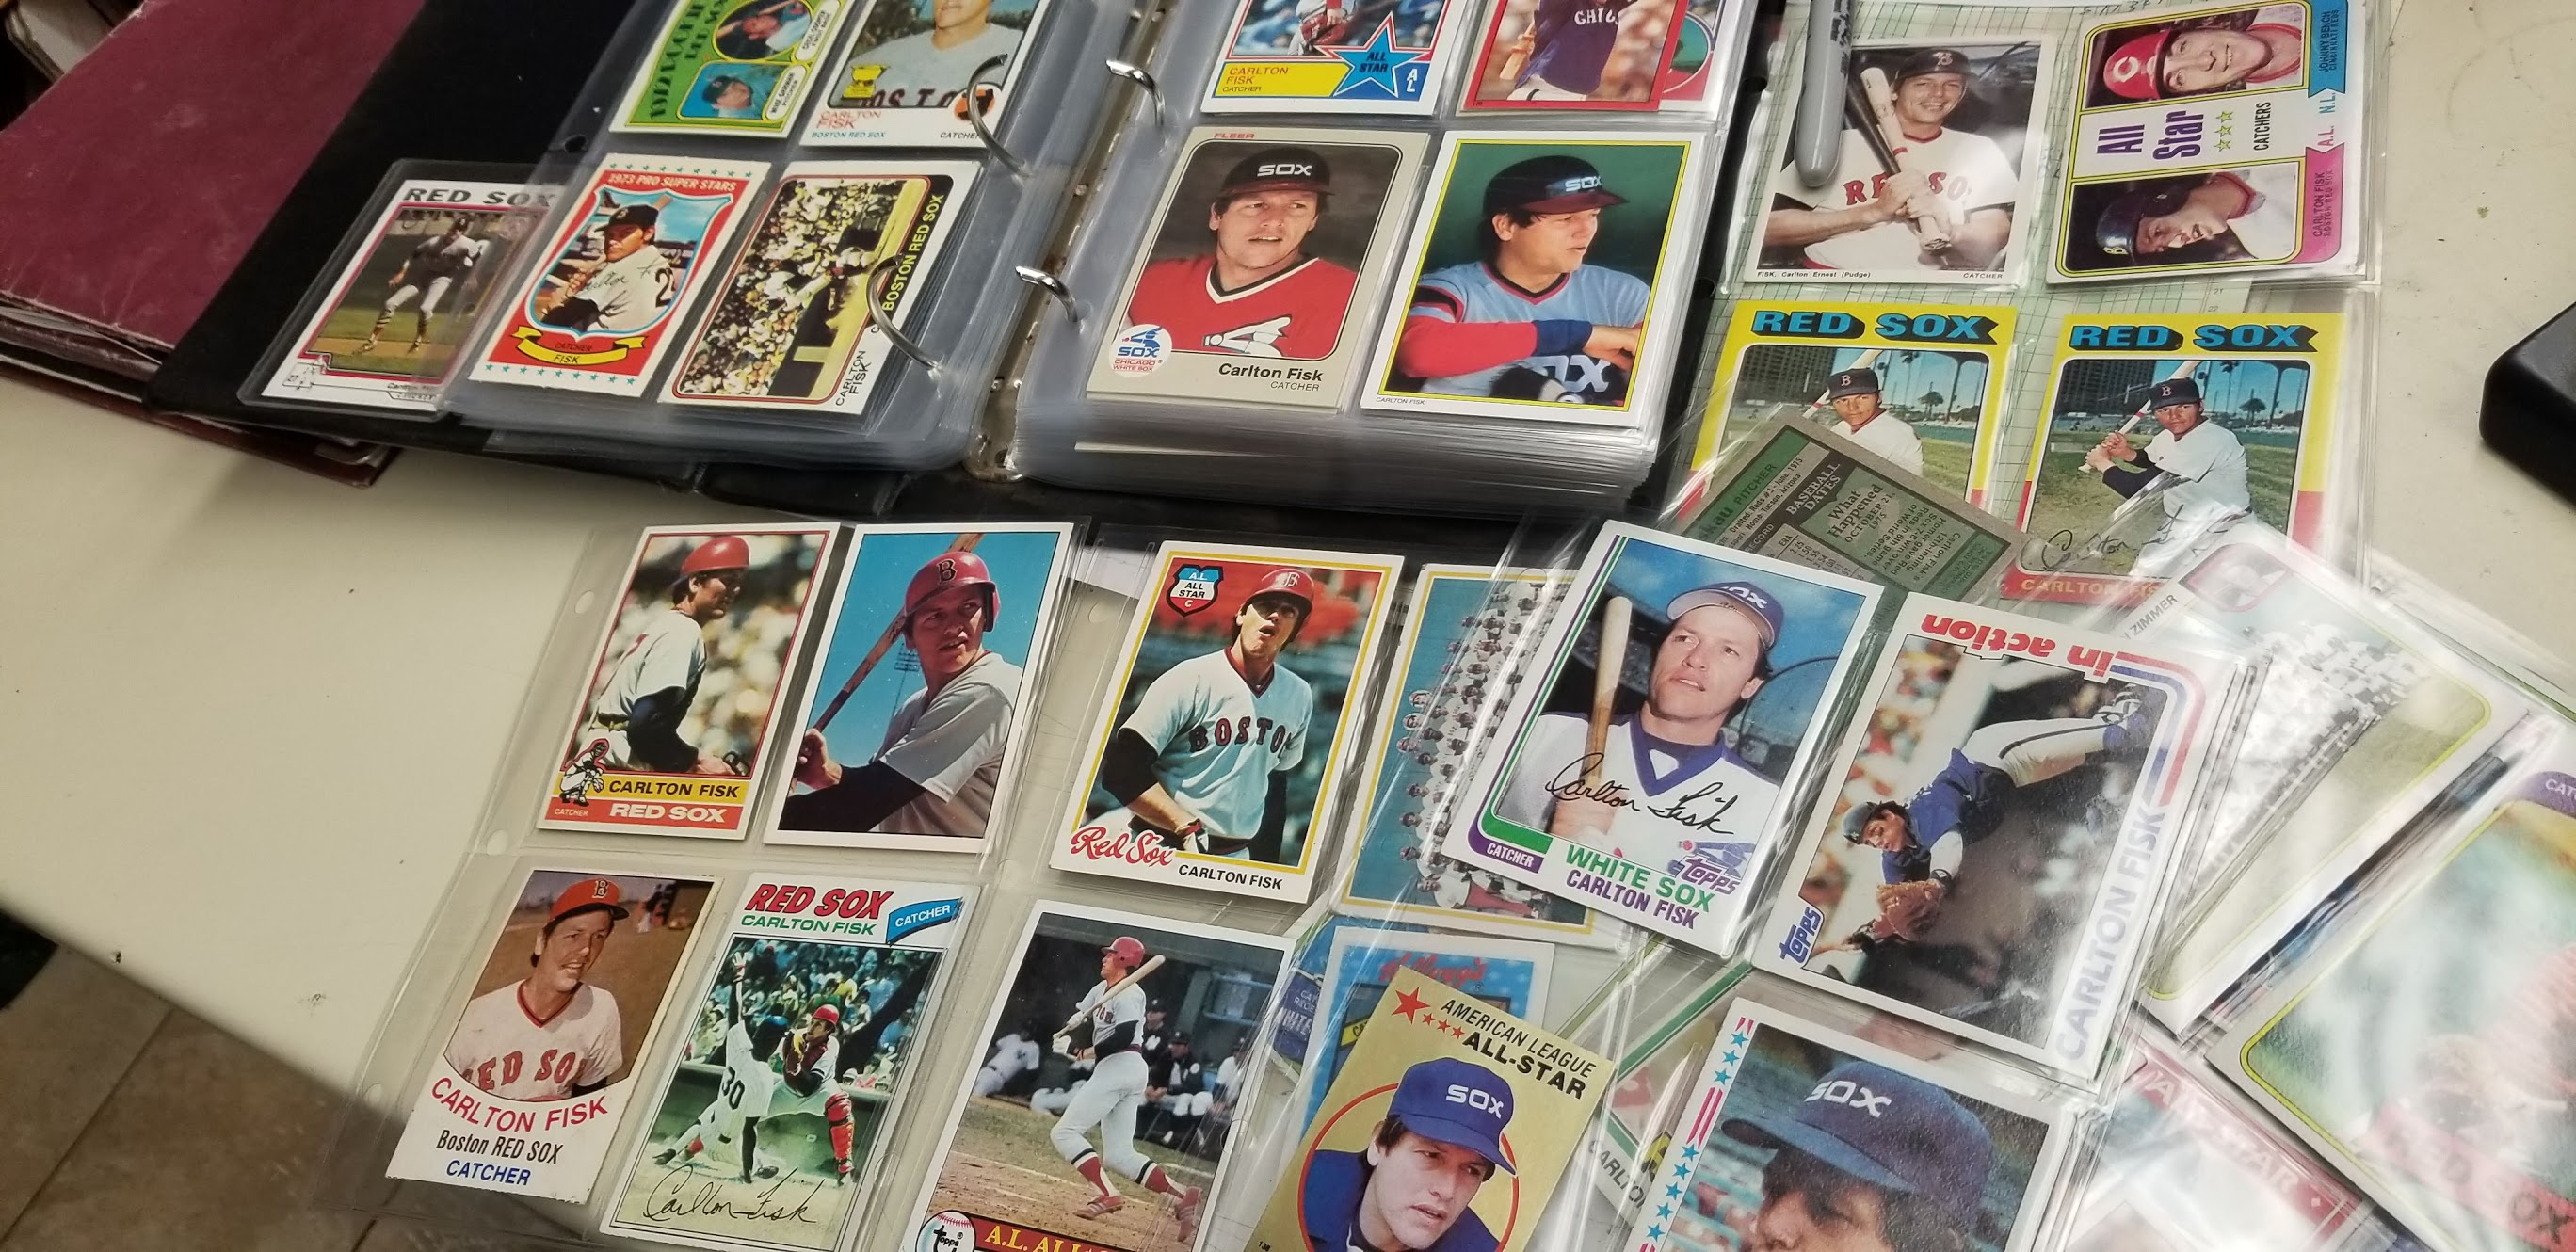 Carlton Fisk baseball cards